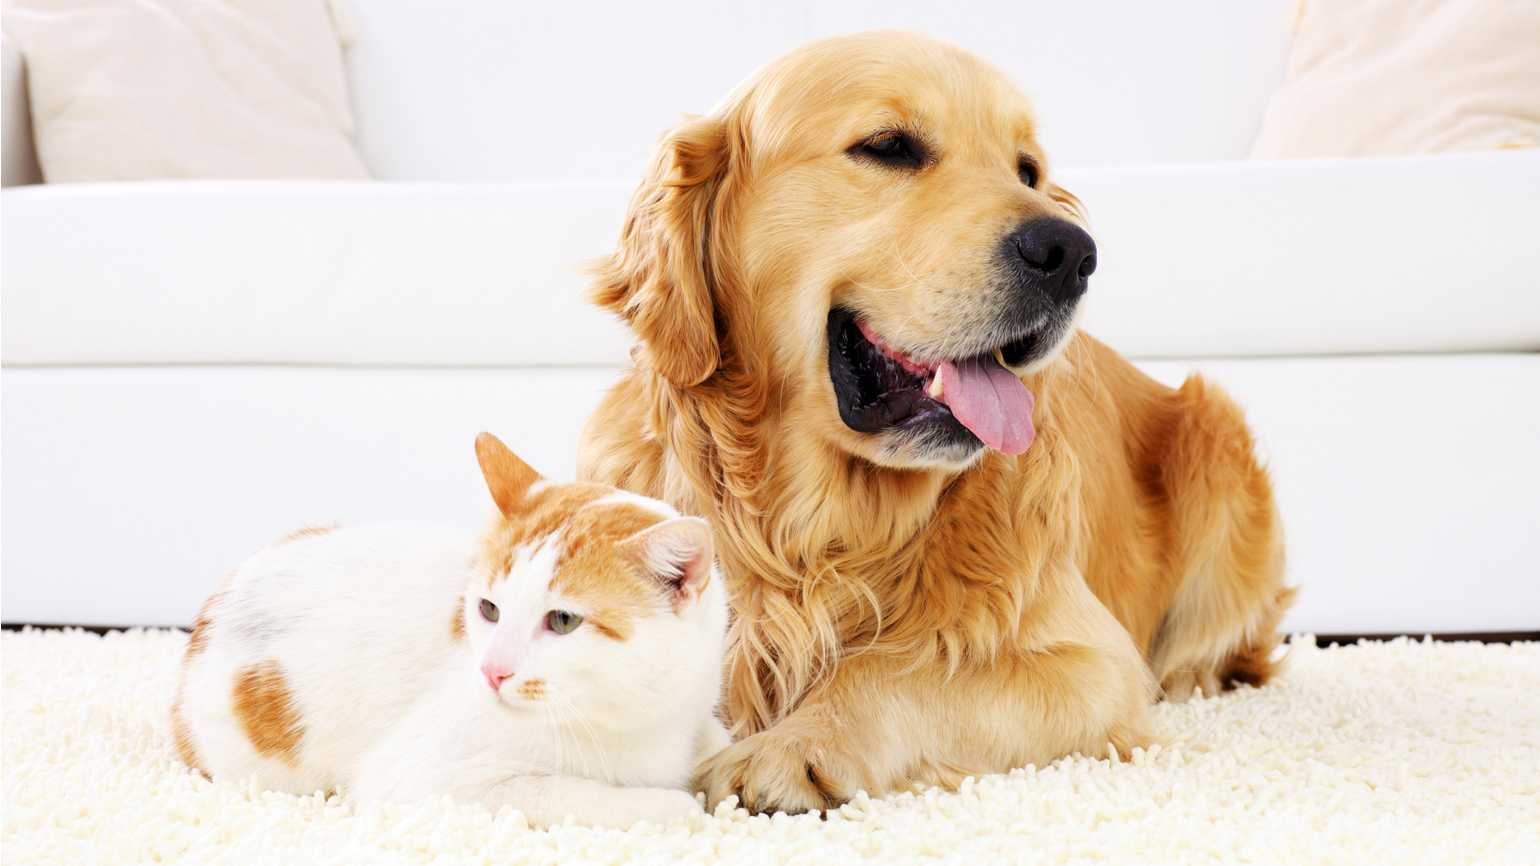 A golden retriever and a cat relaxing on a white carpet.